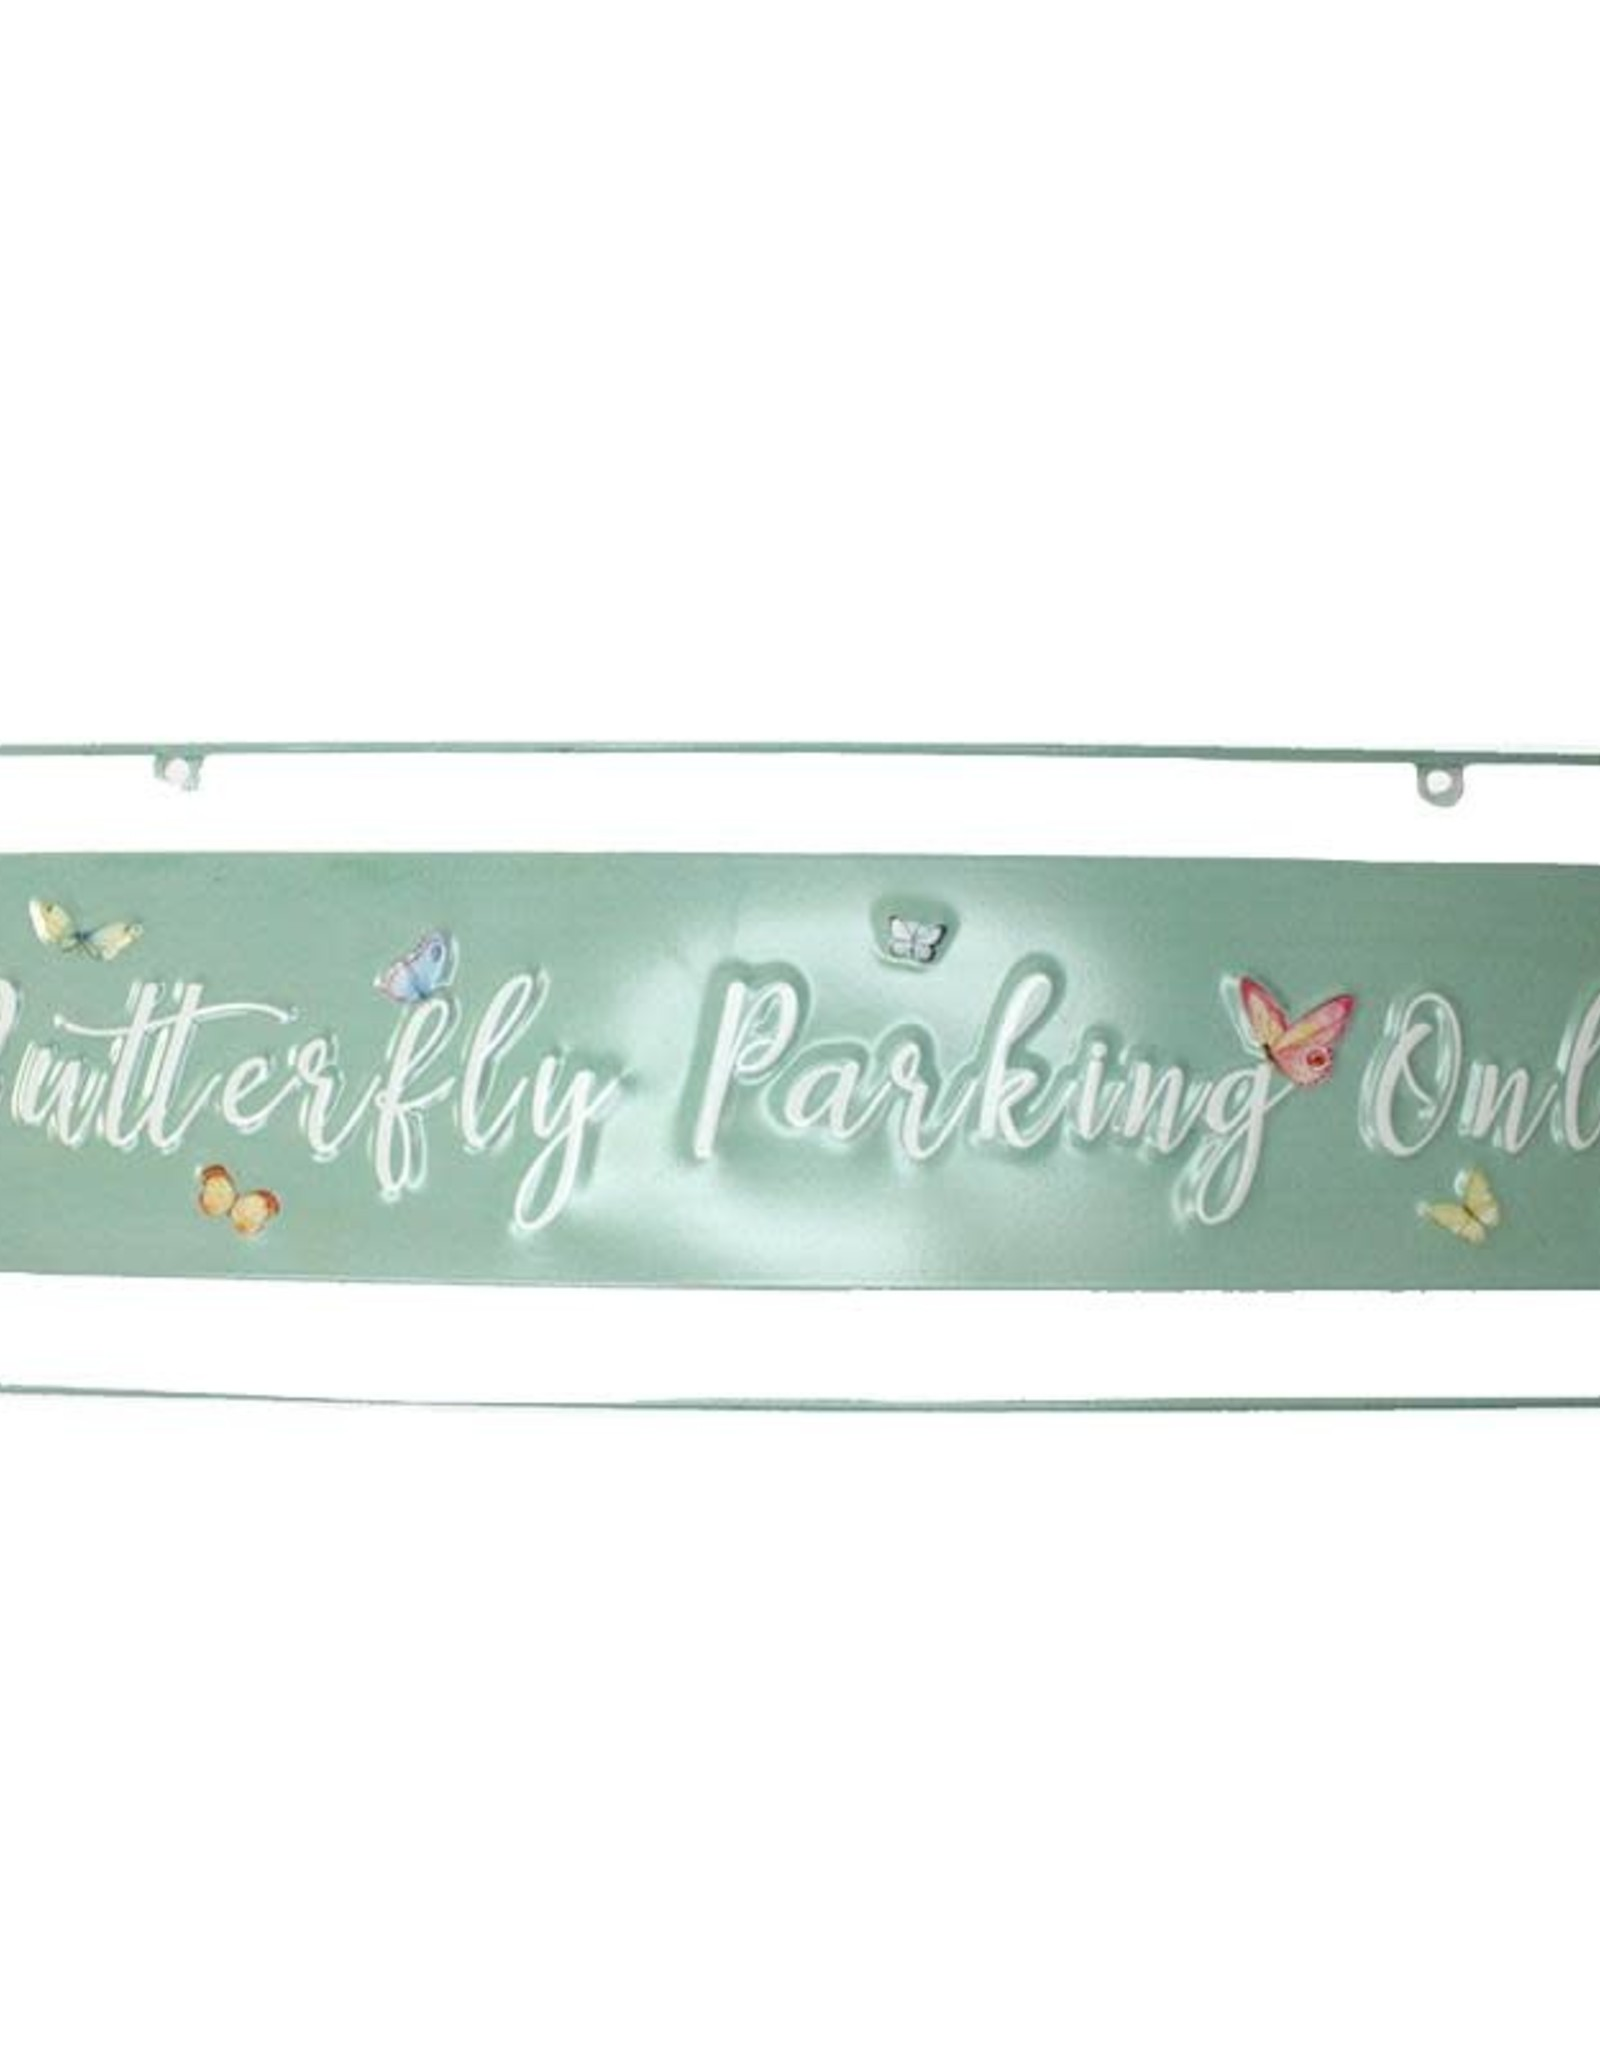 Butterfly Parking Sign